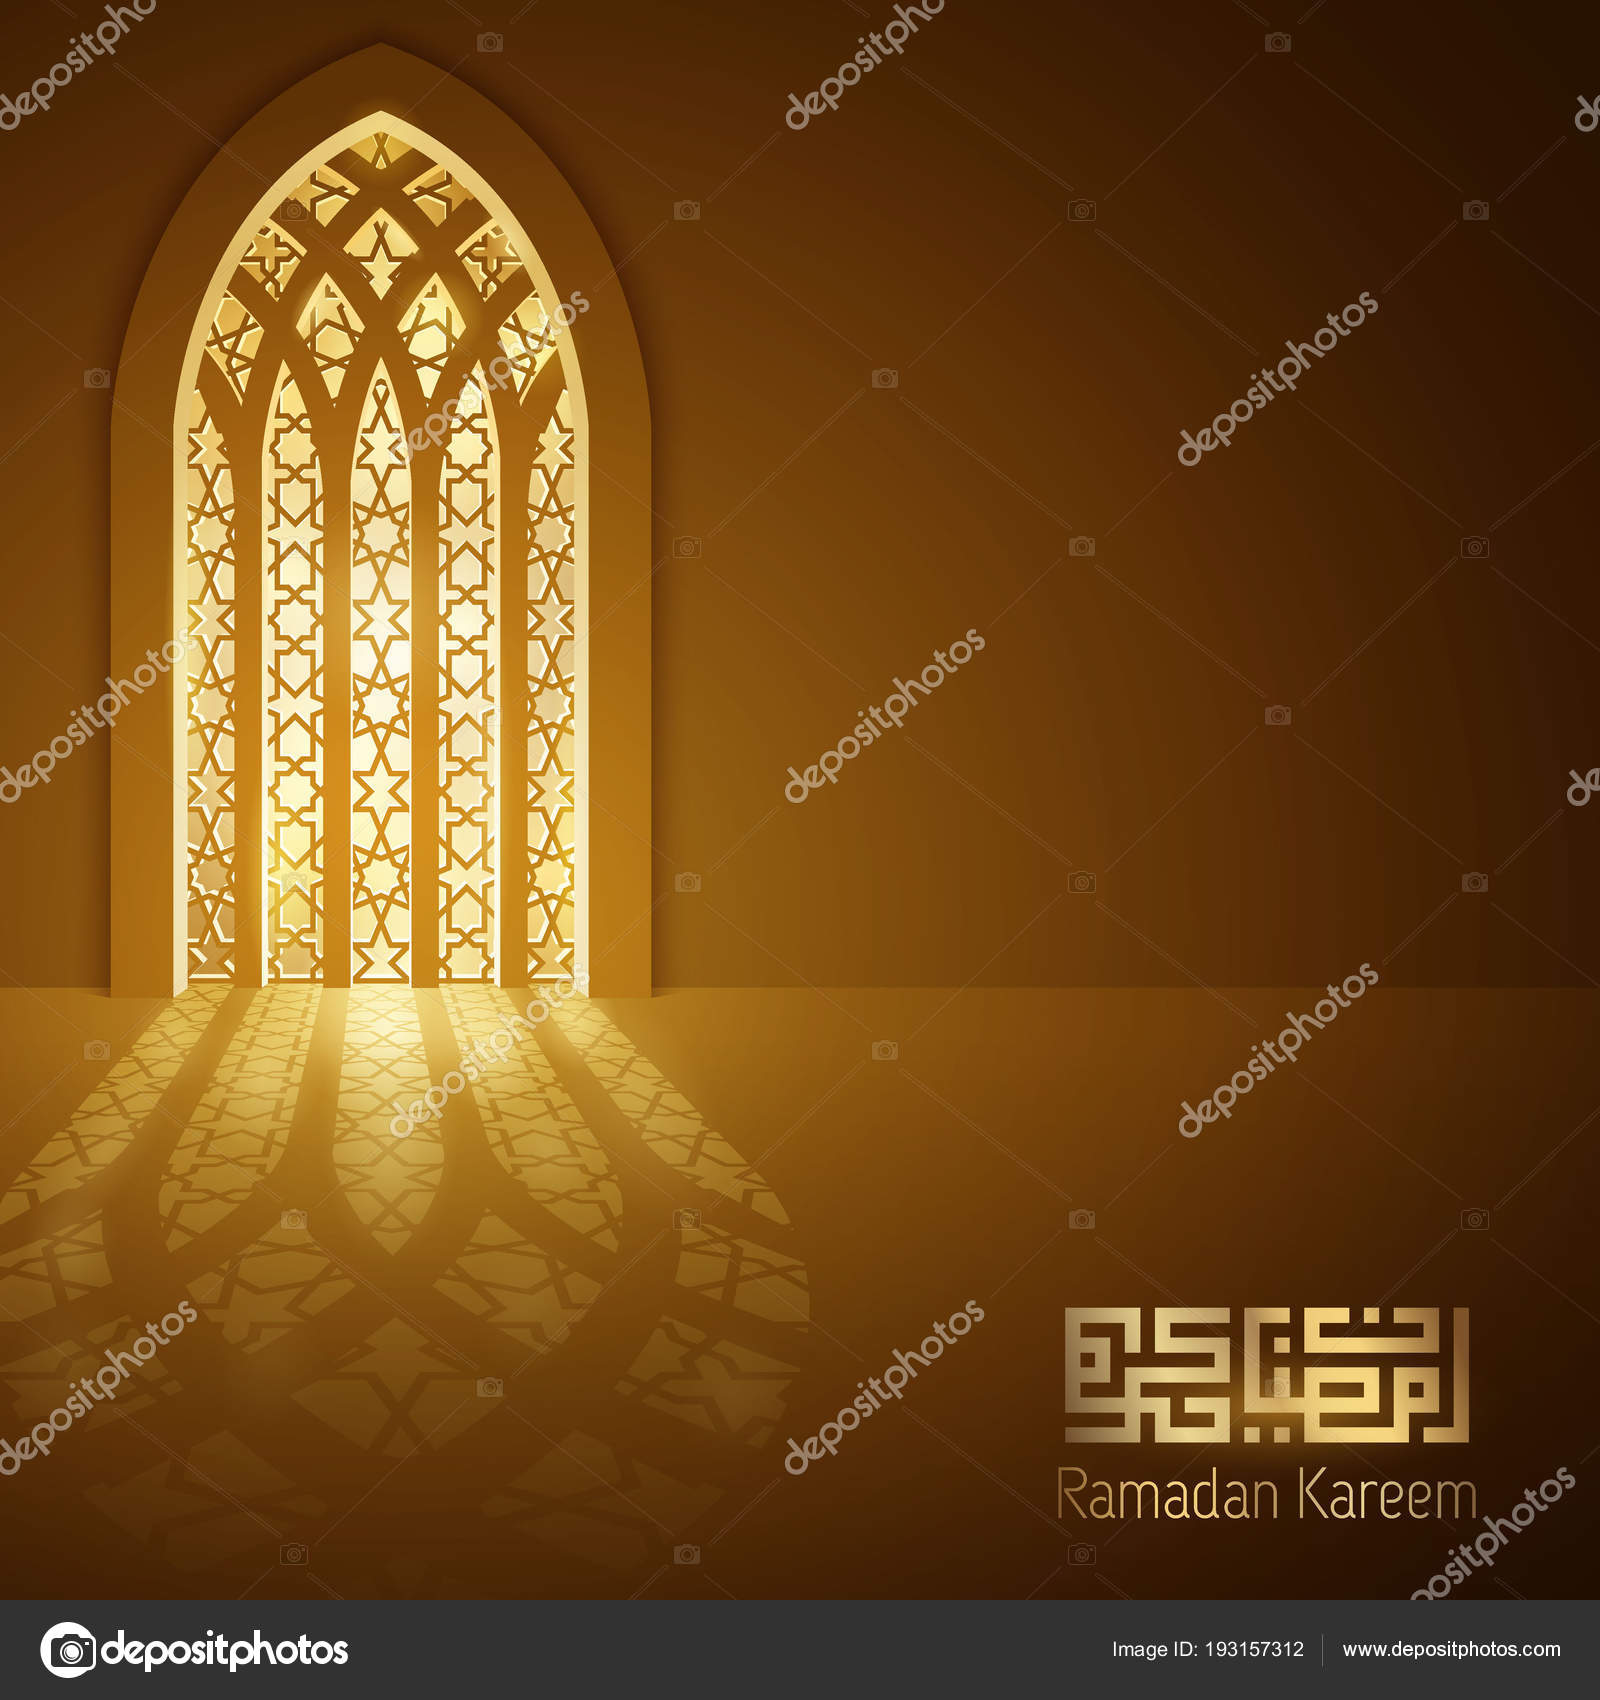 Ramadan Kareem Greeting Golden Background Glow Islamic Mosque Door Arabic u2014 Stock Vector : masjid door vector - pezcame.com